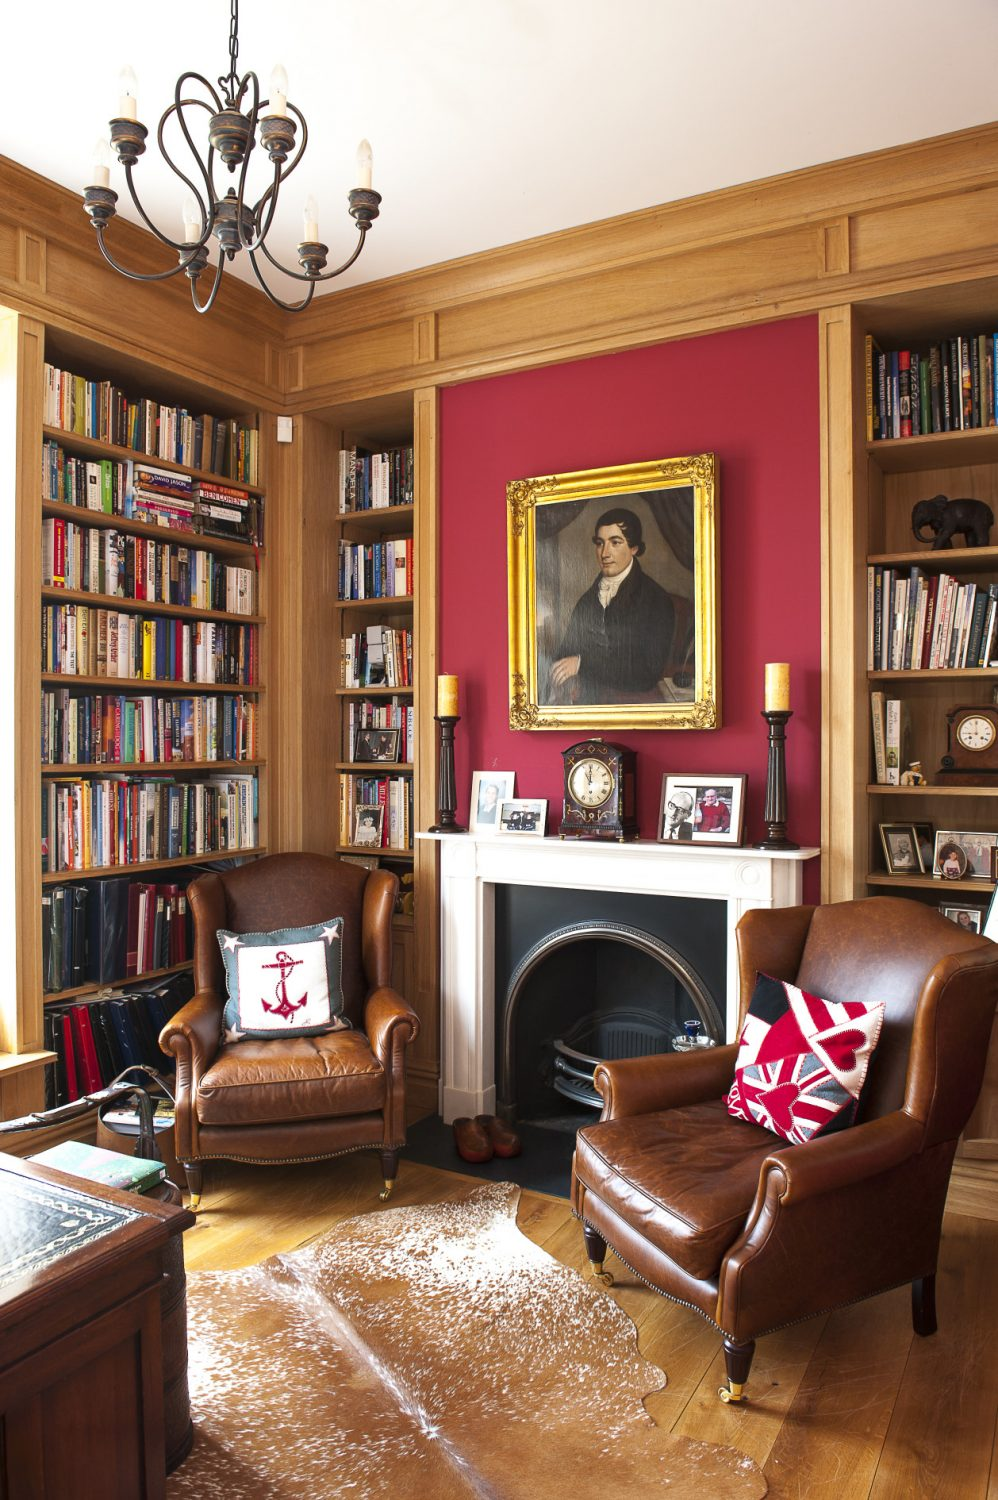 The study is painted in Farrow & Ball Chinese Red, a striking colour that really works and is the perfect backdrop for the oak bookcases